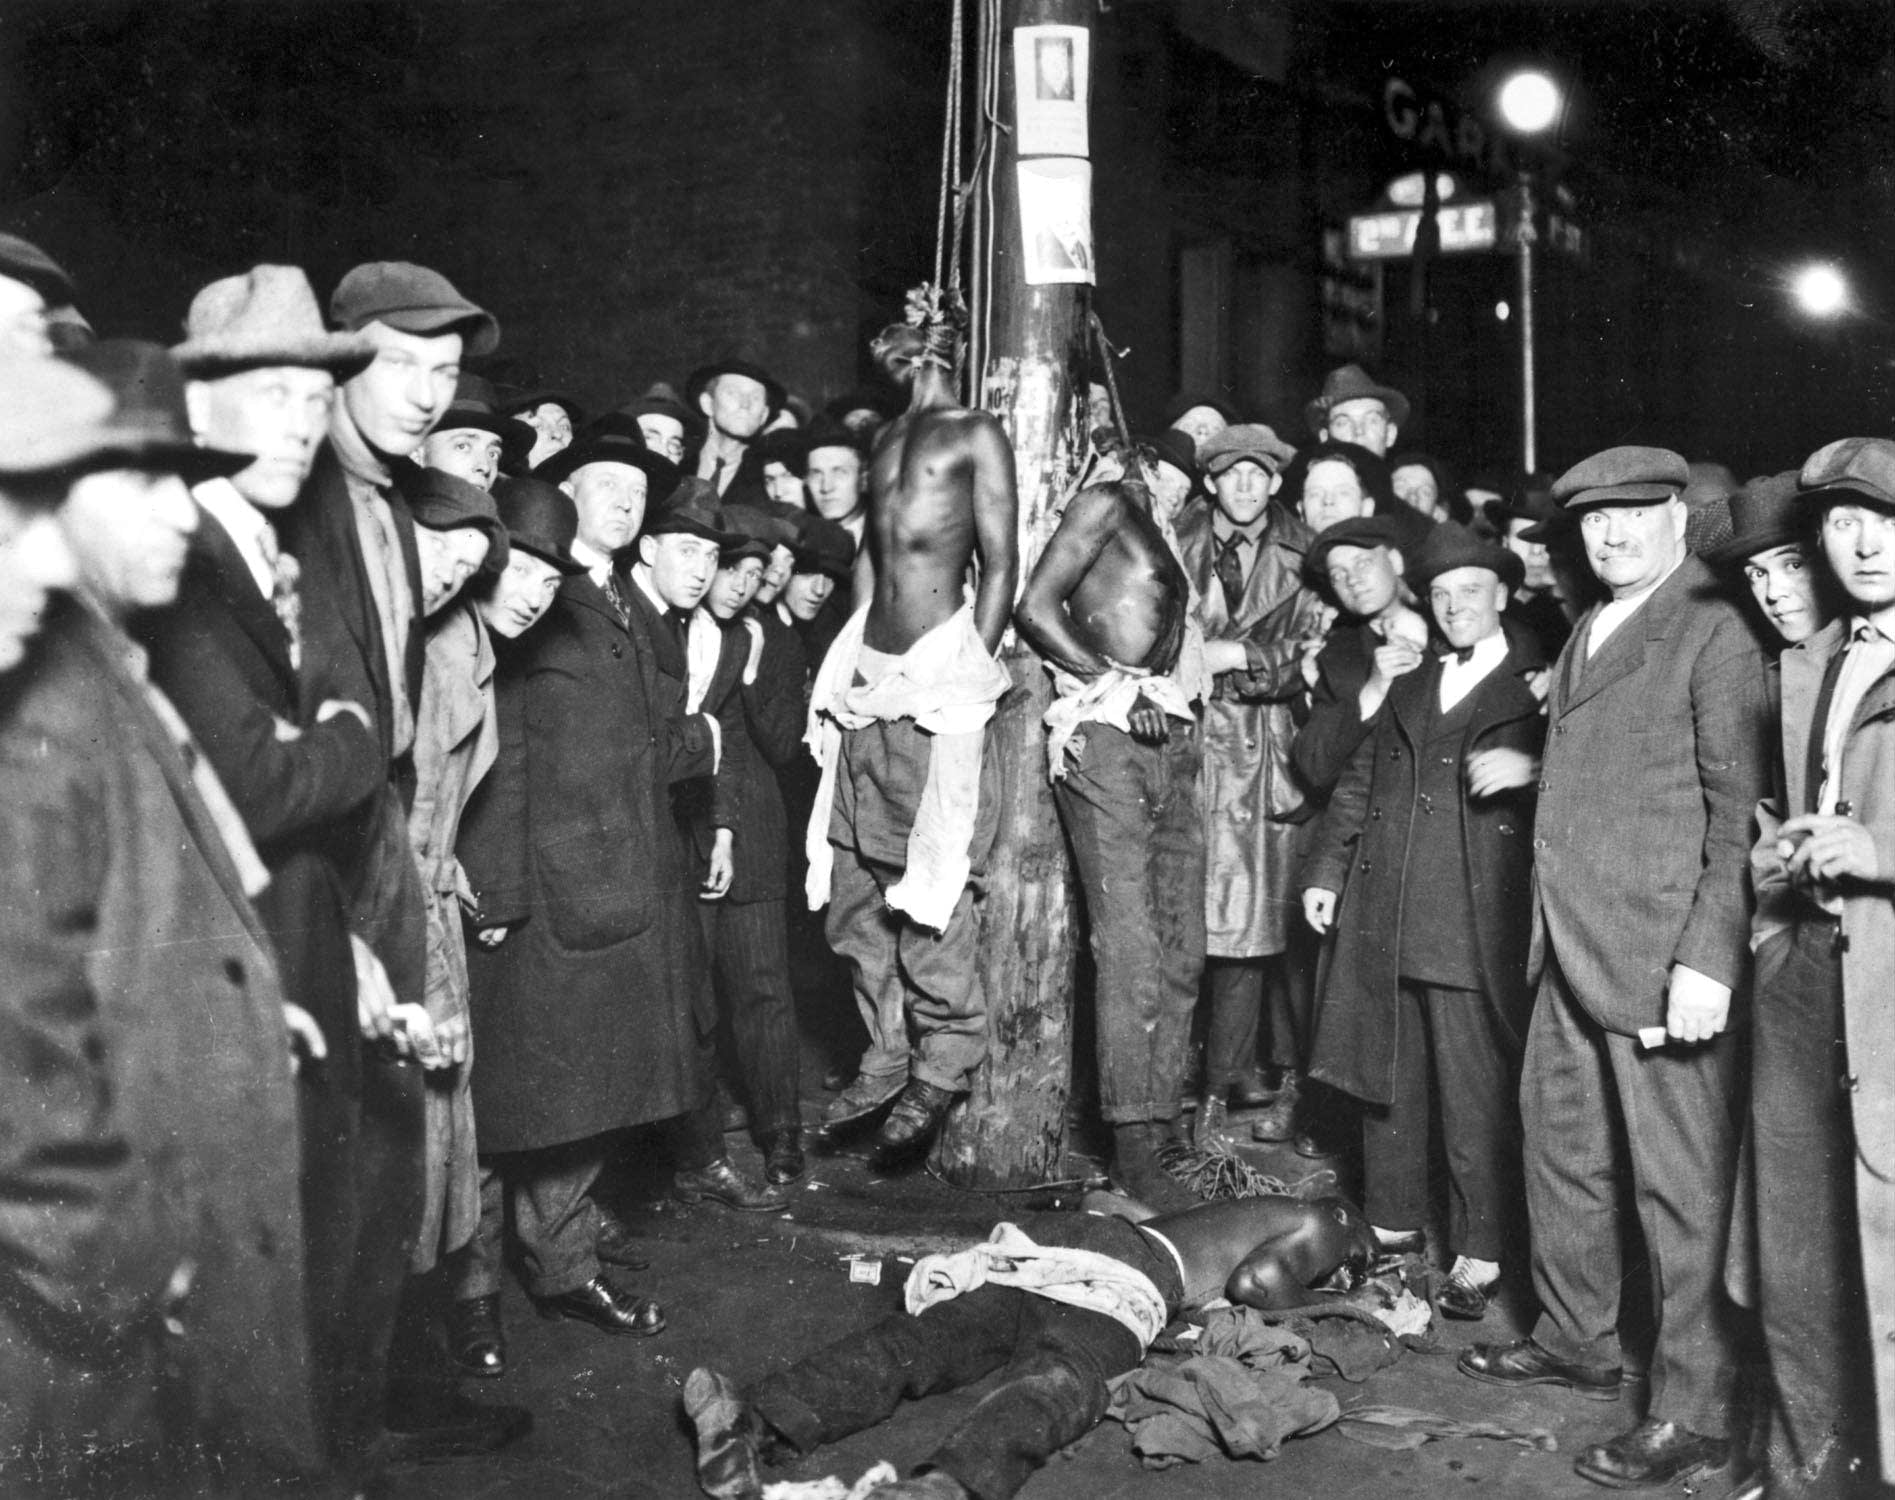 Duluth lynching from the postcard photographed in June, 1920.